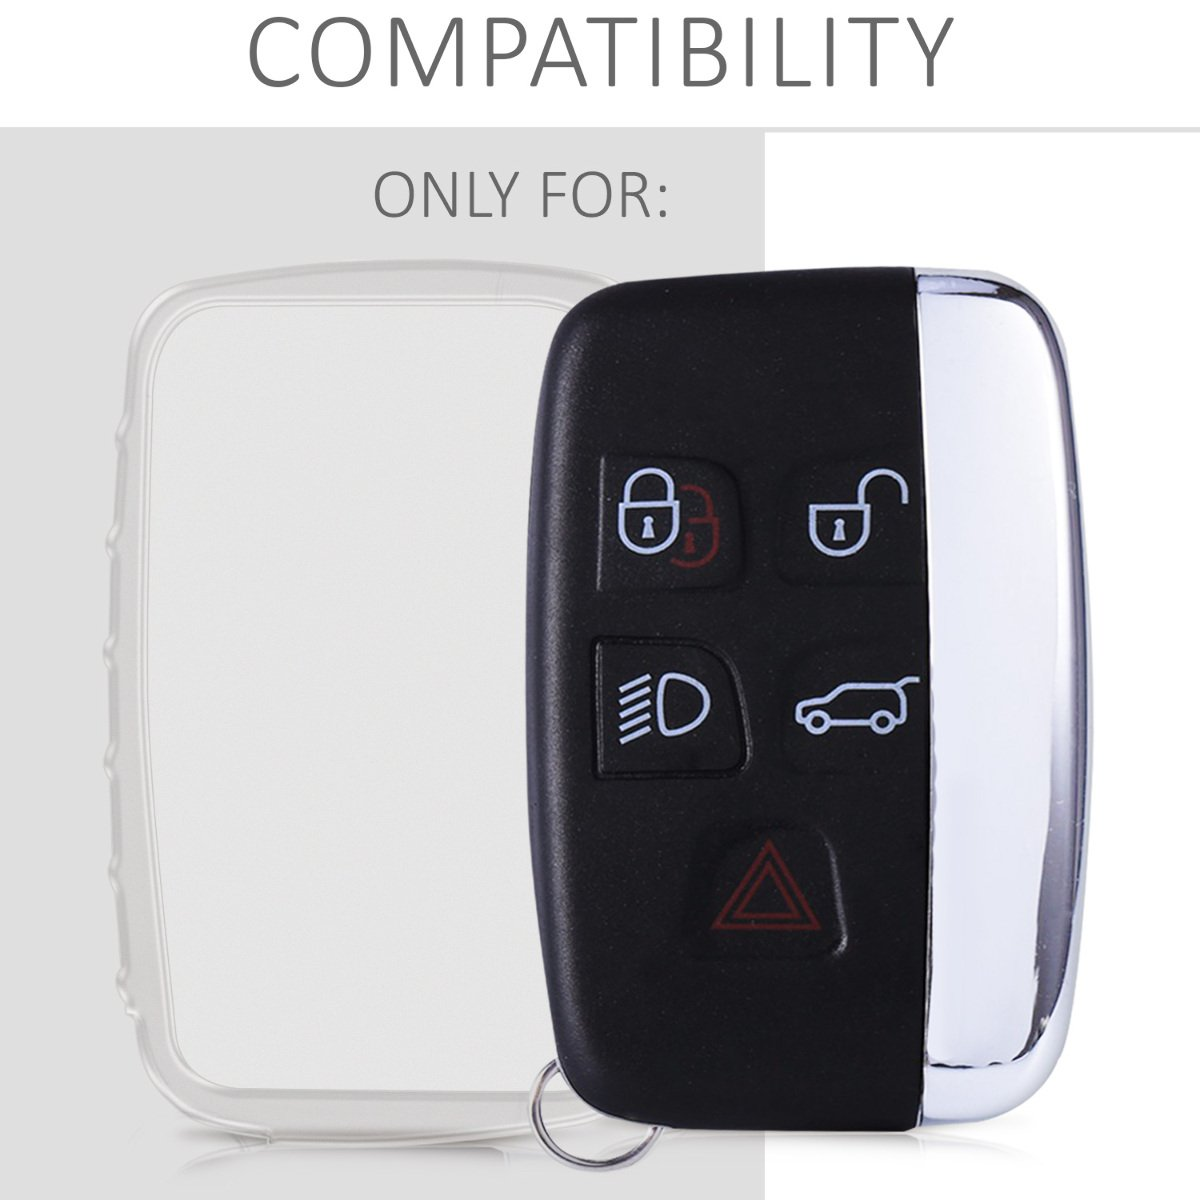 kwmobile Car Key Cover for Land Rover Jaguar Soft TPU Silicone Protective Key Fob Cover for Land Rover Jaguar 5-Button Remote Car Key Silver Matte